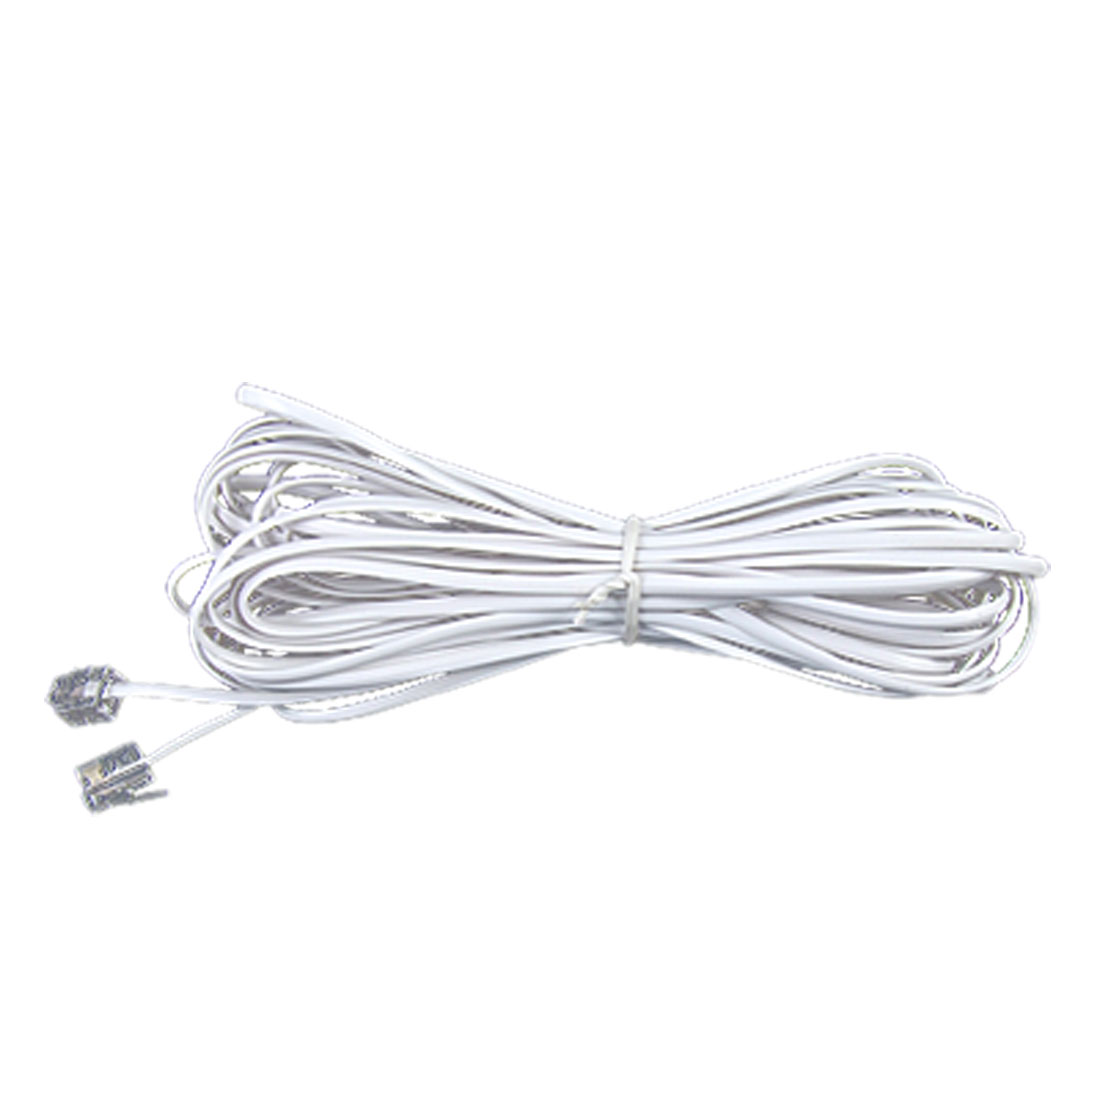 Telephone Line Cord 9.9m Length White RJ11 to RJ11